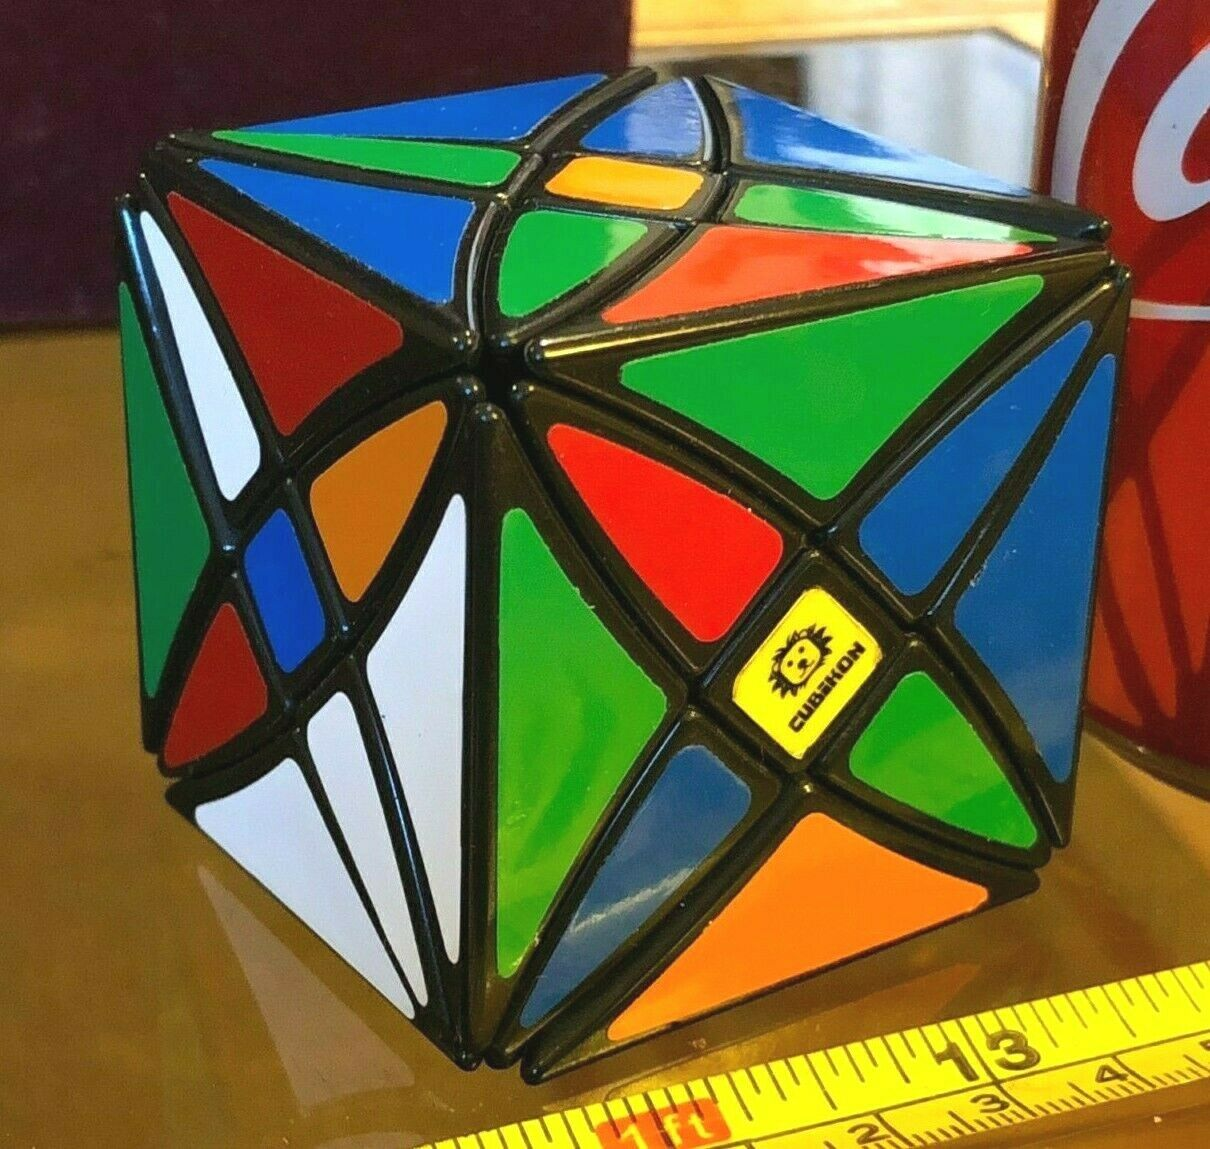 Axle Cube Cubikon Puzzle Cube Puzzle Difficult Used